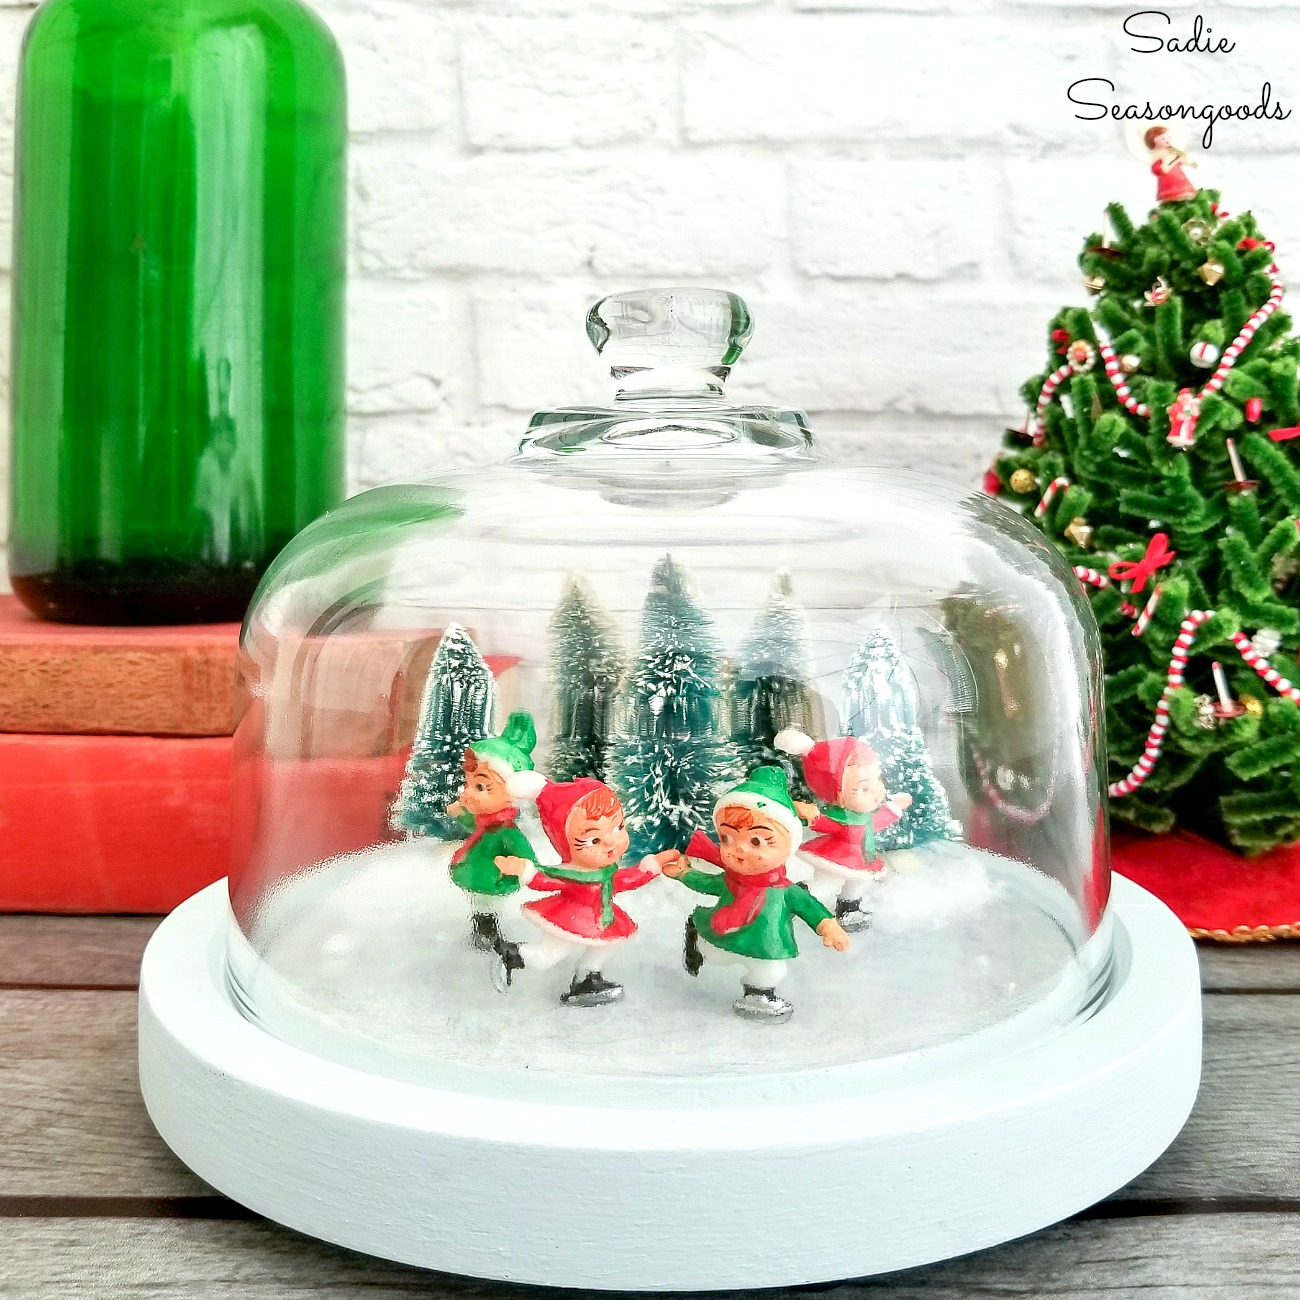 Making a winter scene with ice skaters on a frozen pond by upcycling a glass cloche or cheese dome